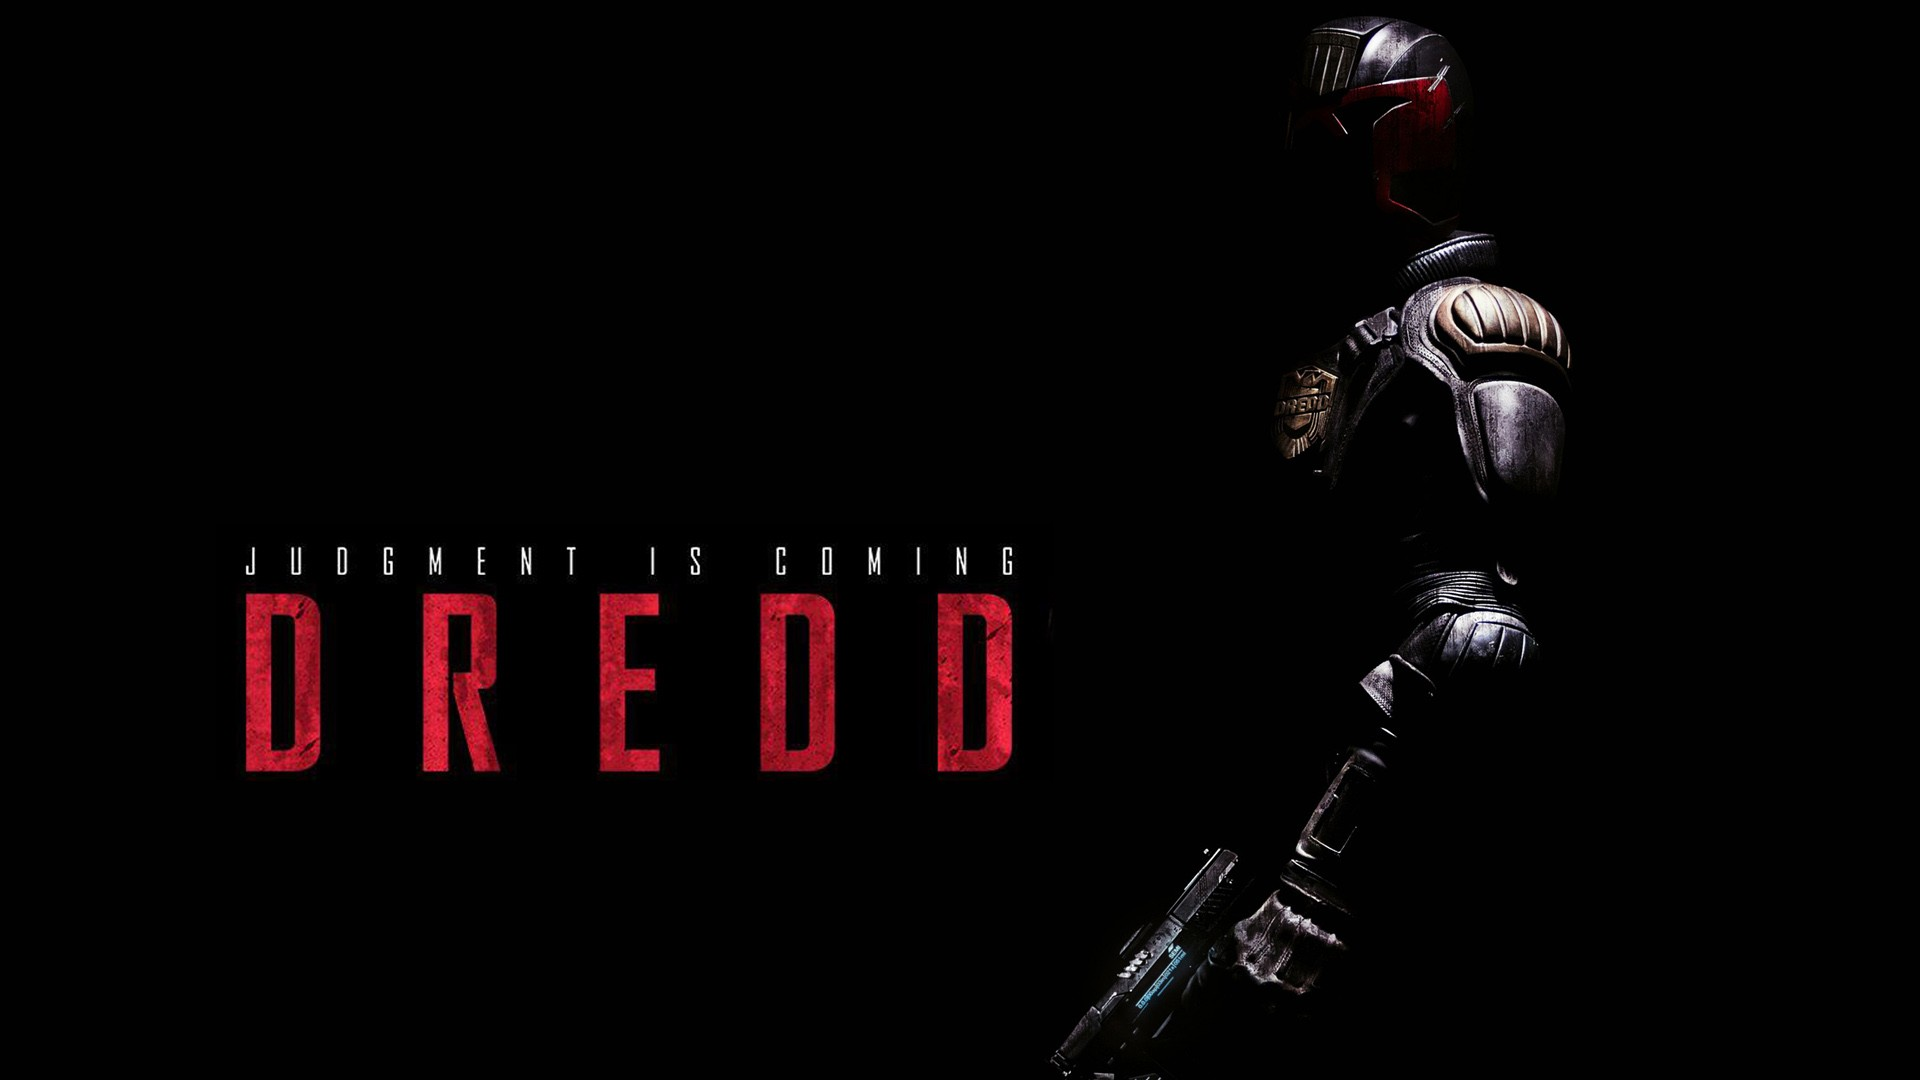 Deadpool Logo Wallpaper Hd Dredd 2012 Movie Wallpapers Hd Wallpapers Id 11517